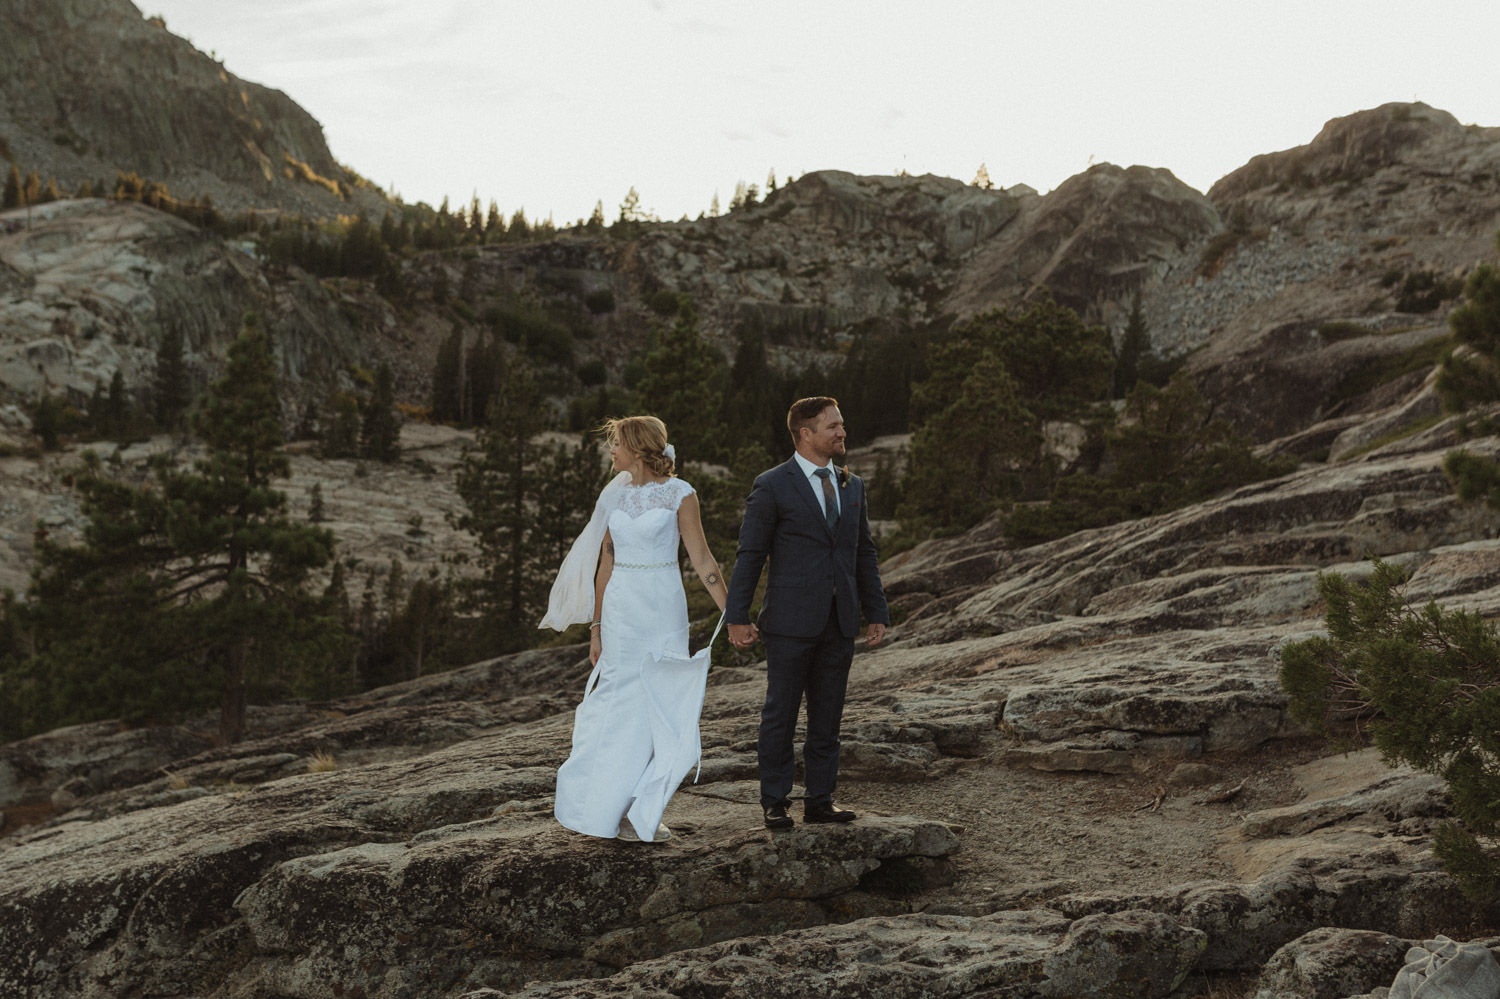 North Lake Tahoe wedding couples photo at Donner Summit